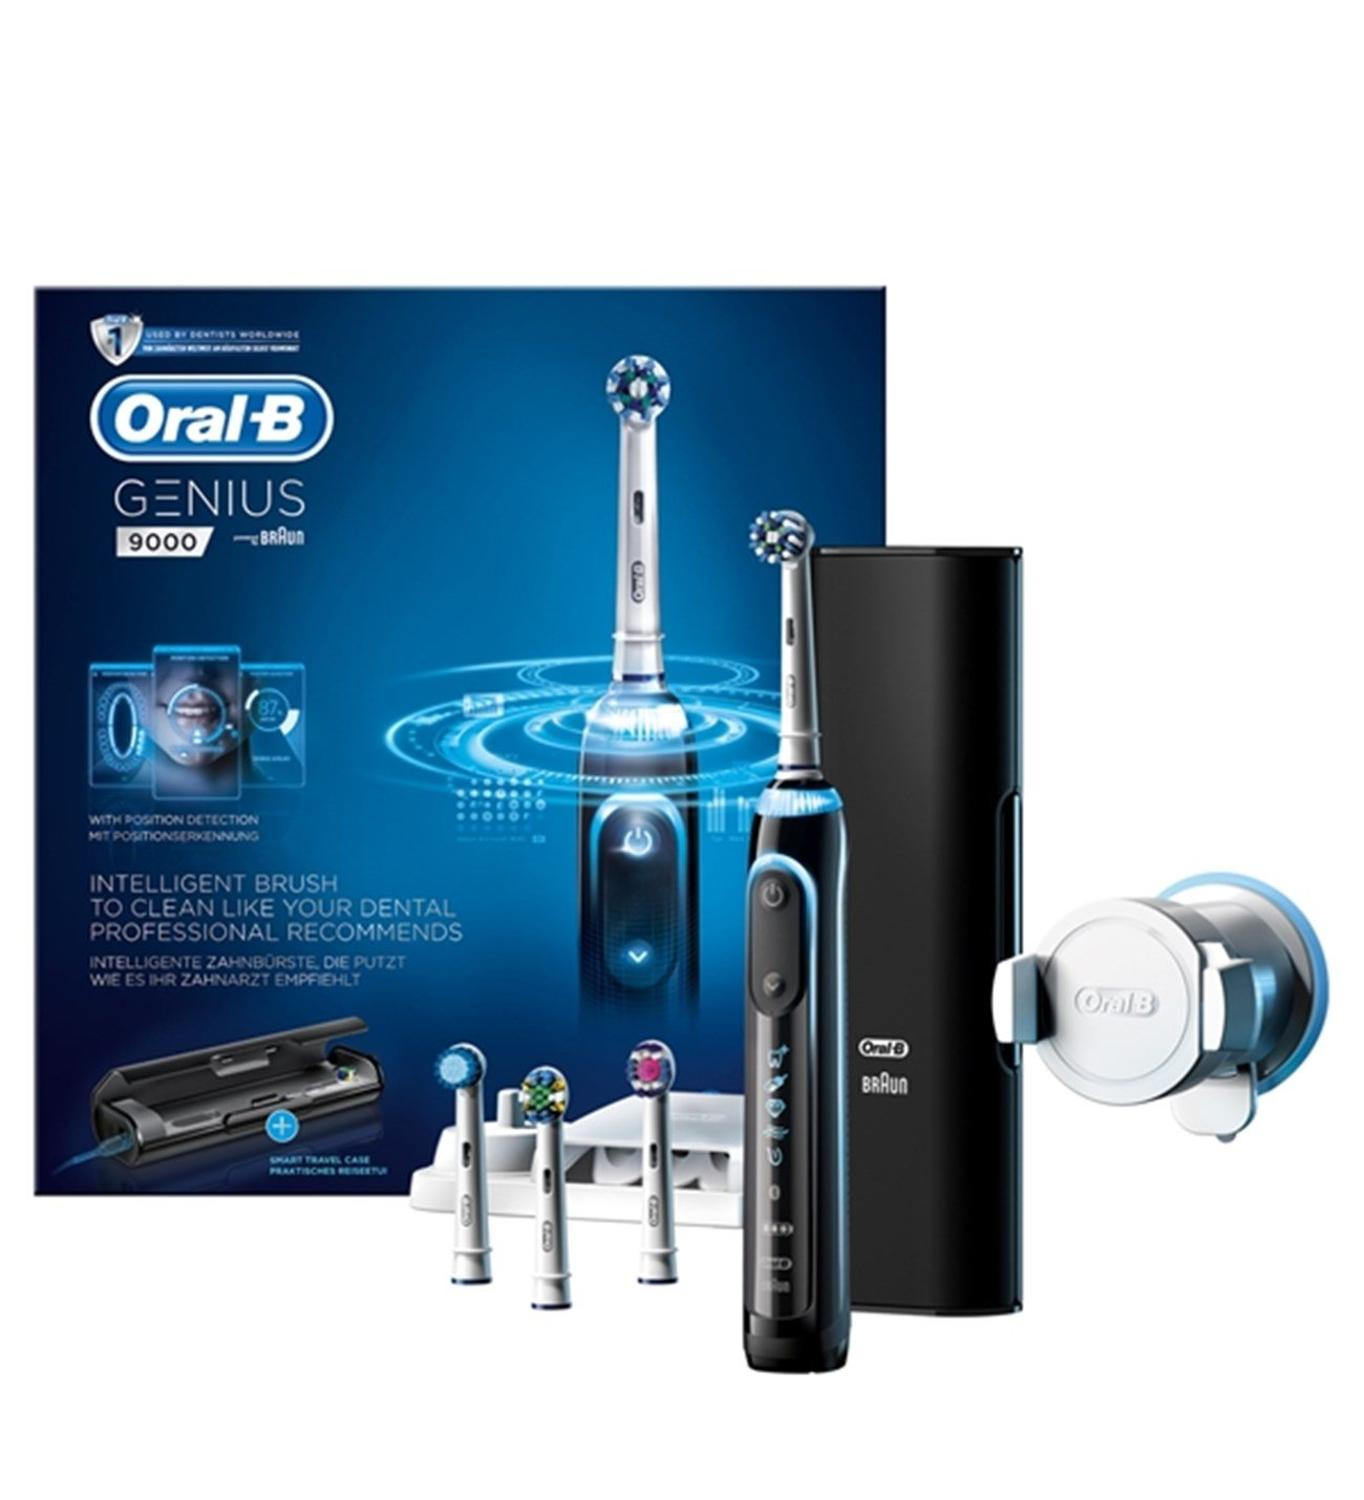 ORAL-B GENIUS 9000 Electric Toothbrush Braun NEW IN THE BOX EU PLUG 220-240V image